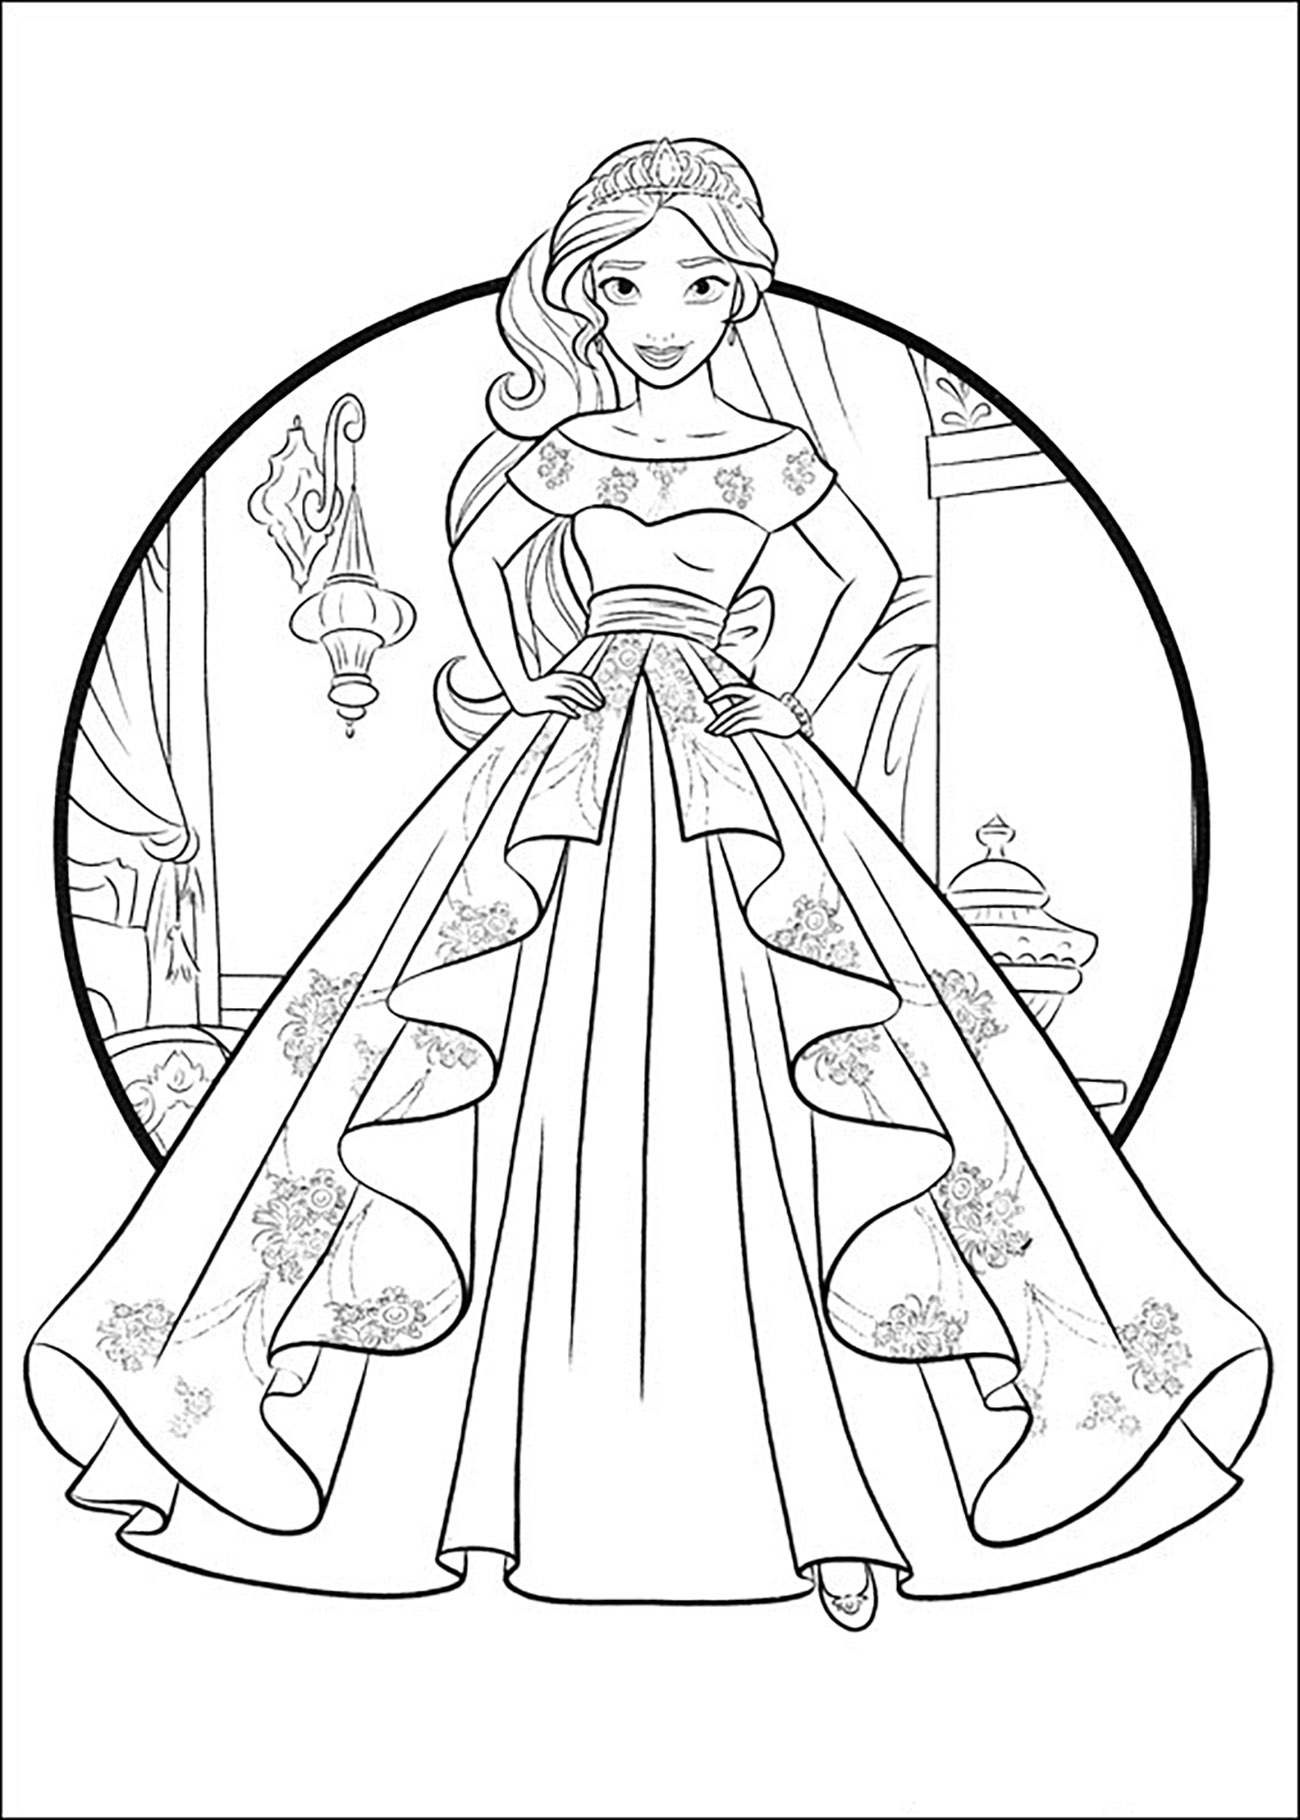 photograph relating to Elena of Avalor Coloring Pages Printable called 21+ Eye-catching Consider of Elena Of Avalor Coloring Web pages